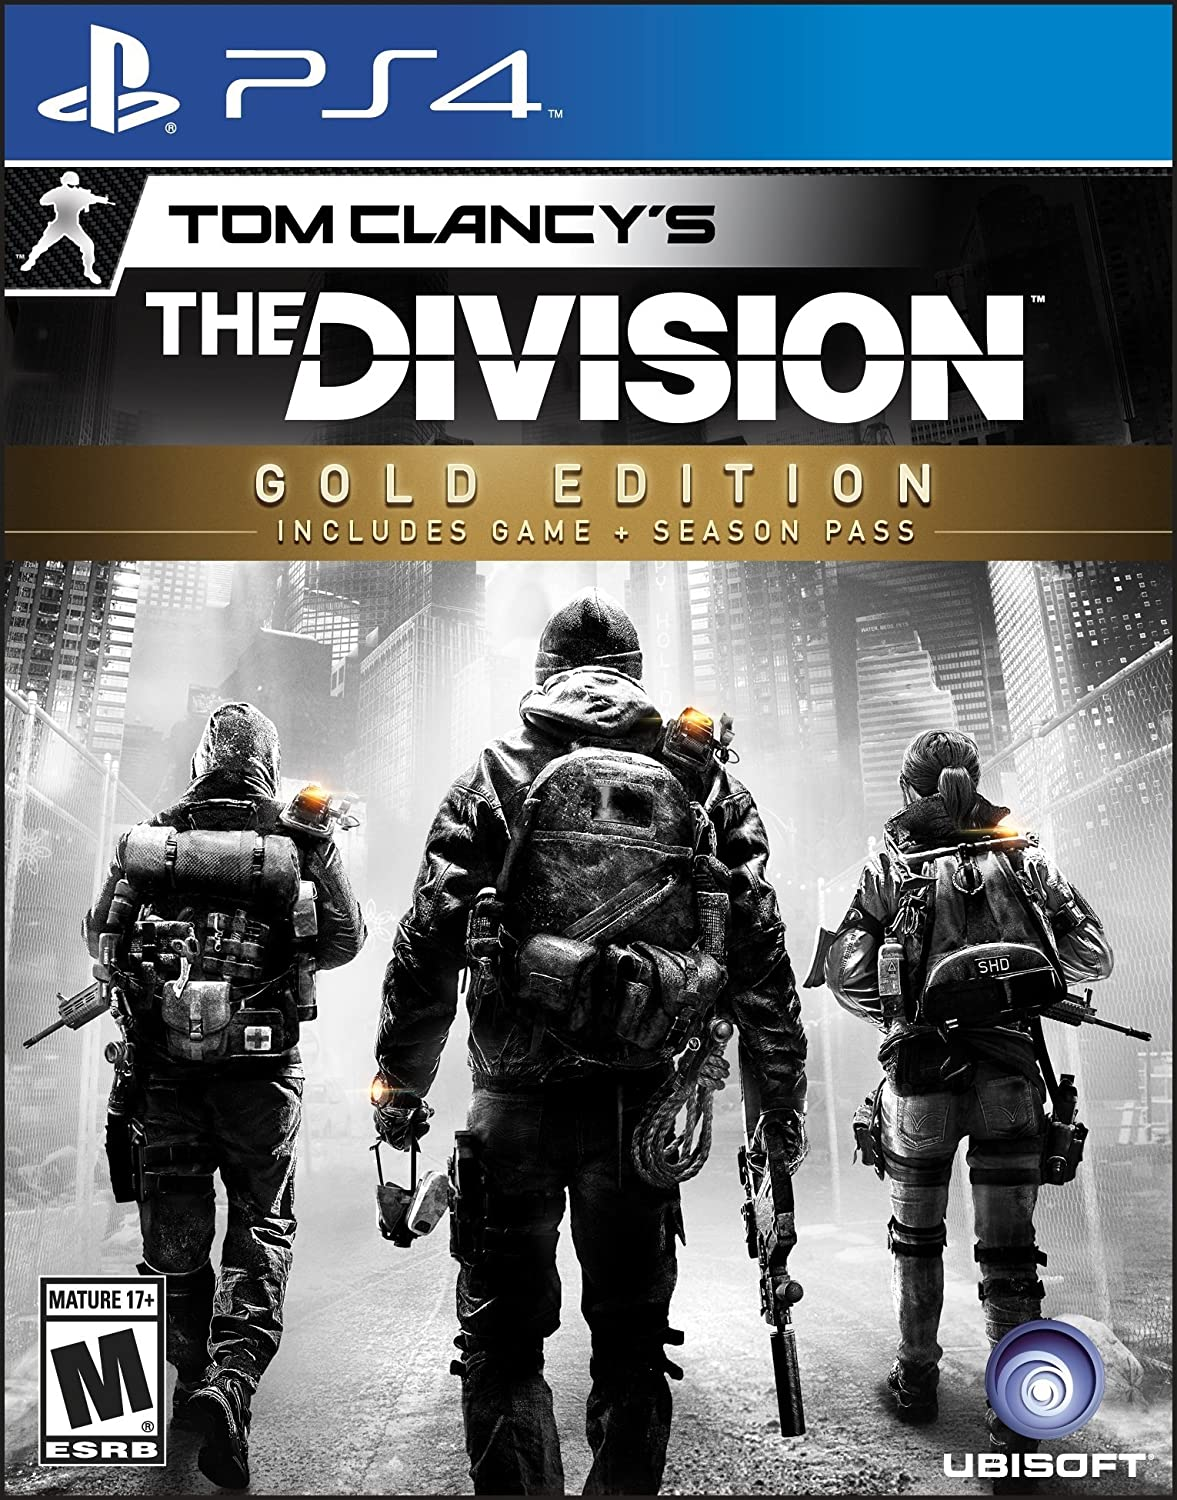 Tom Clancy's The Division Gold Edition - PS4 (Digital Code)